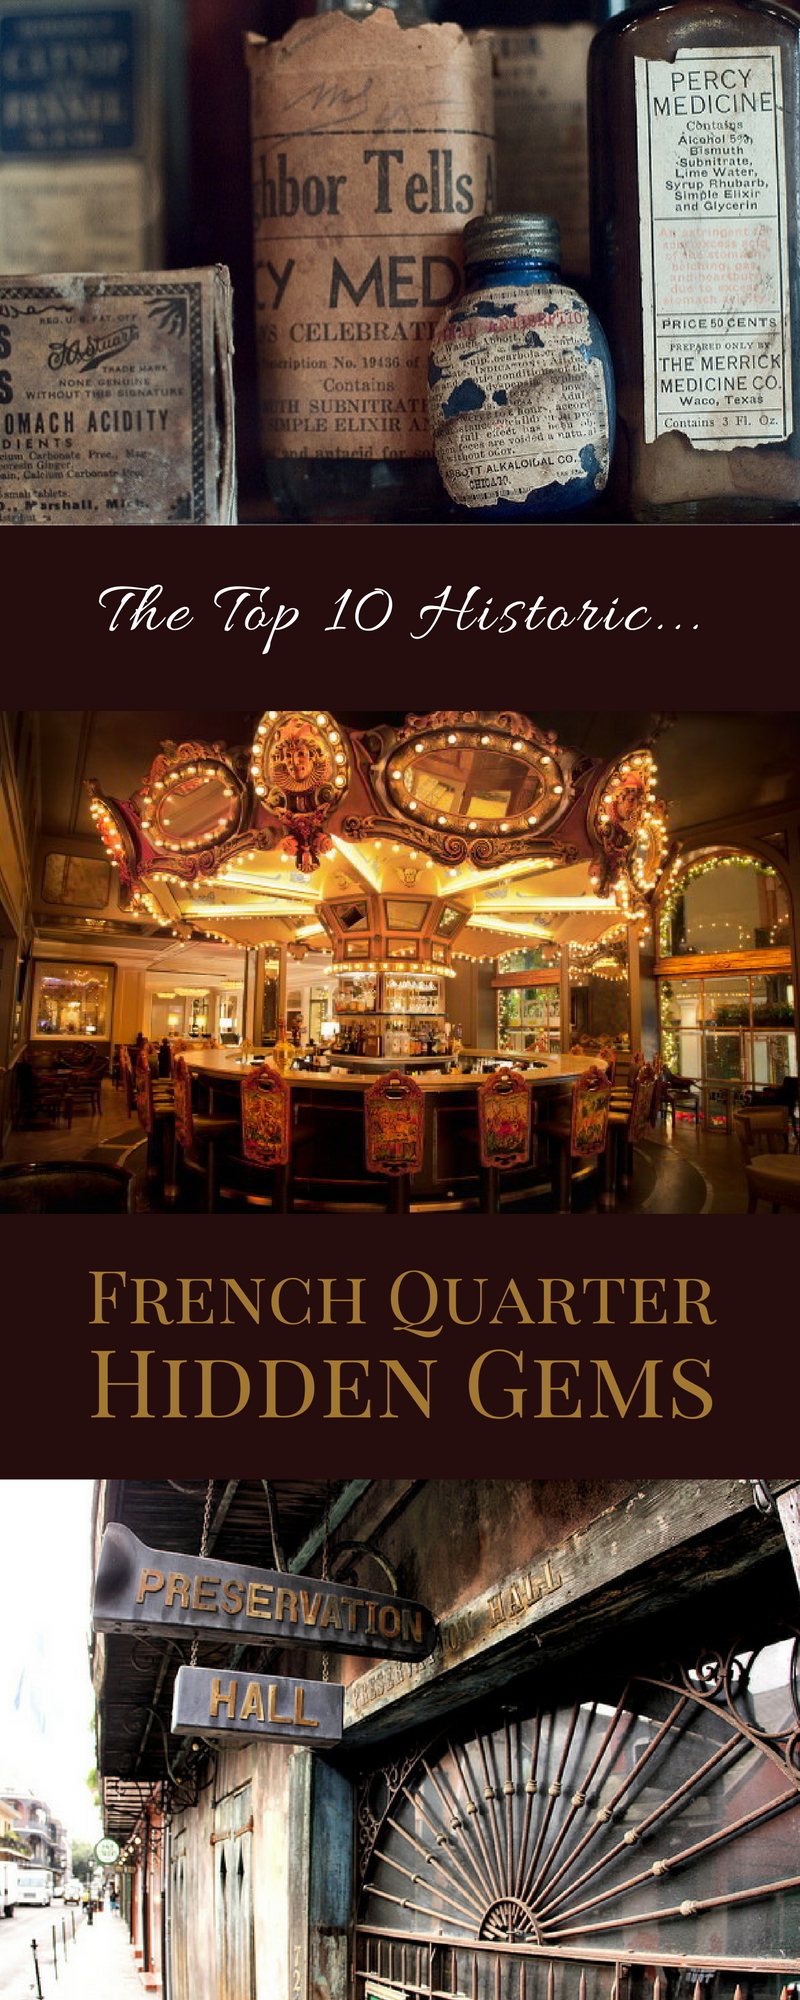 Scope them out all in one day, or tackle them a few at a time: these are the top 10 historic hidden gems in the French Quarter of New Orleans.